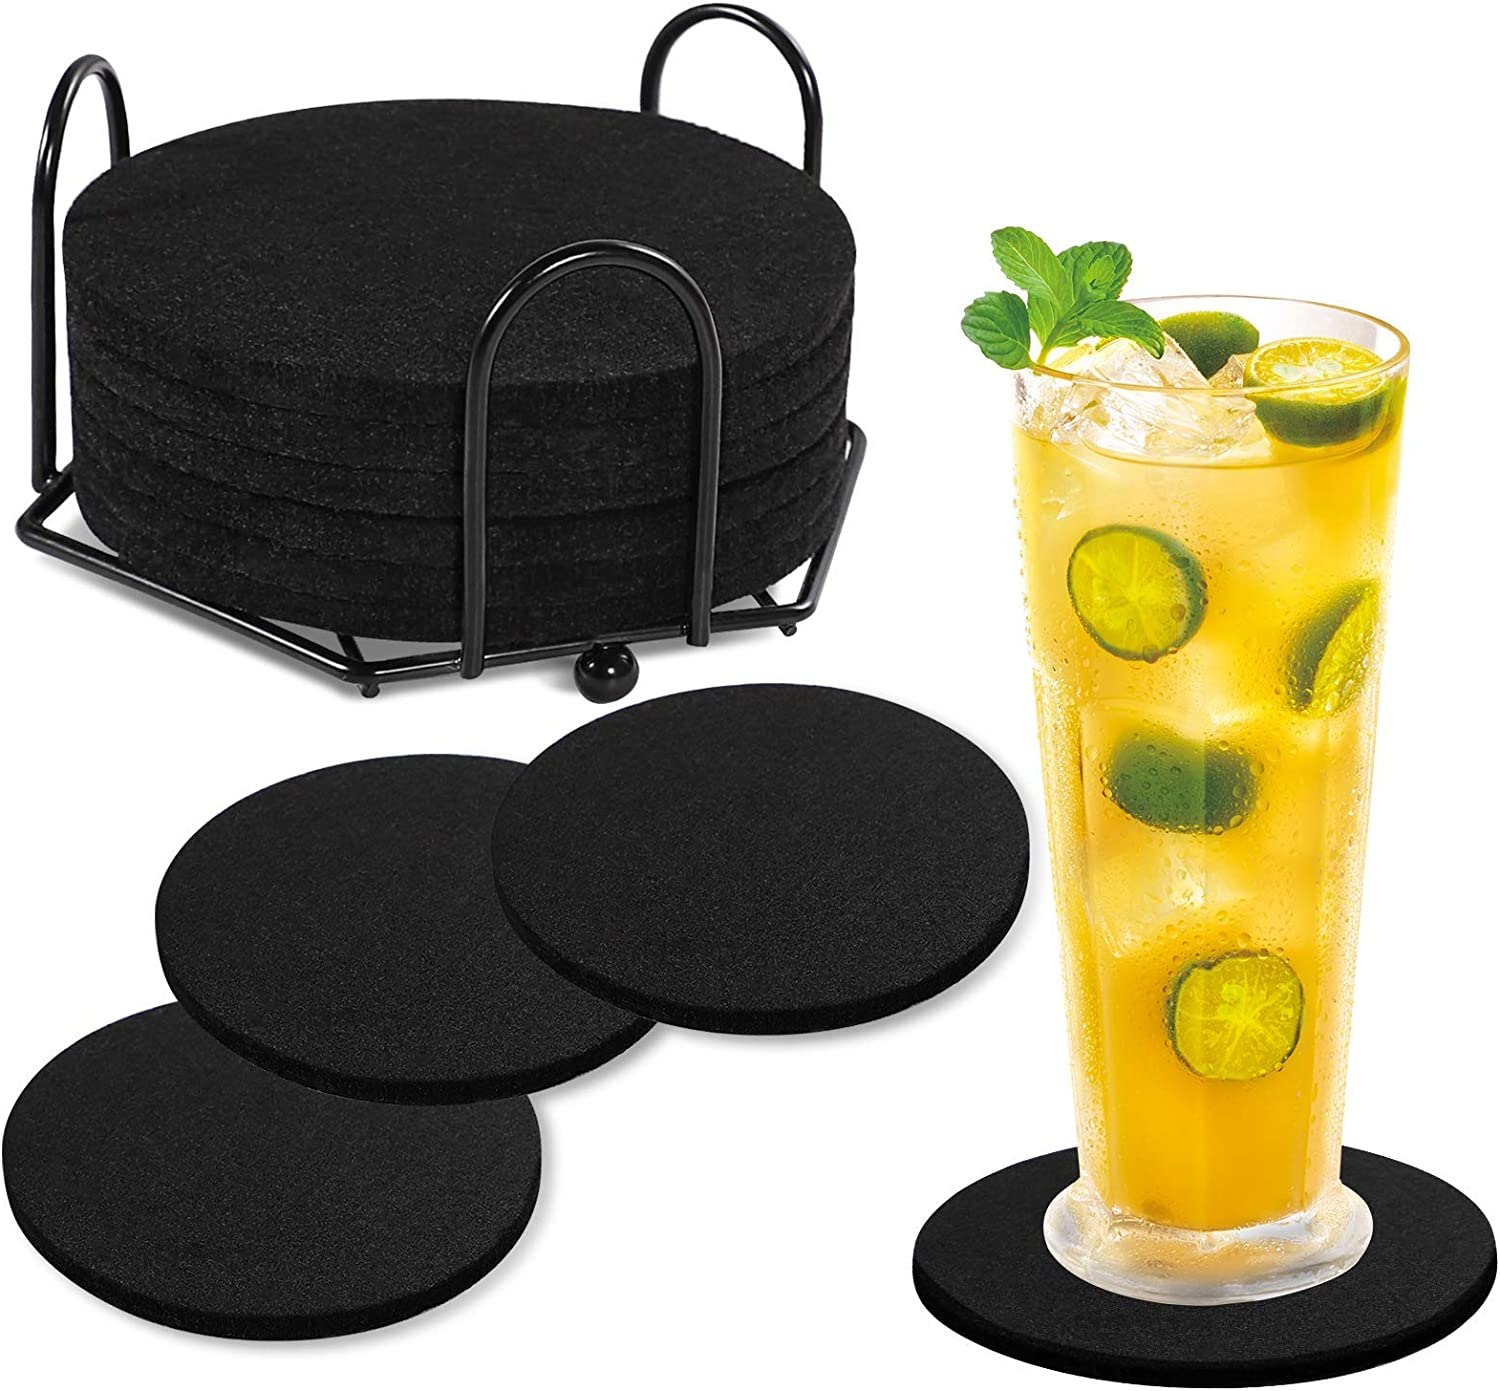 Sale Special Price Tikea Felt Coasters Round - Bar Absorbent Be super welcome a 8PCS Drink